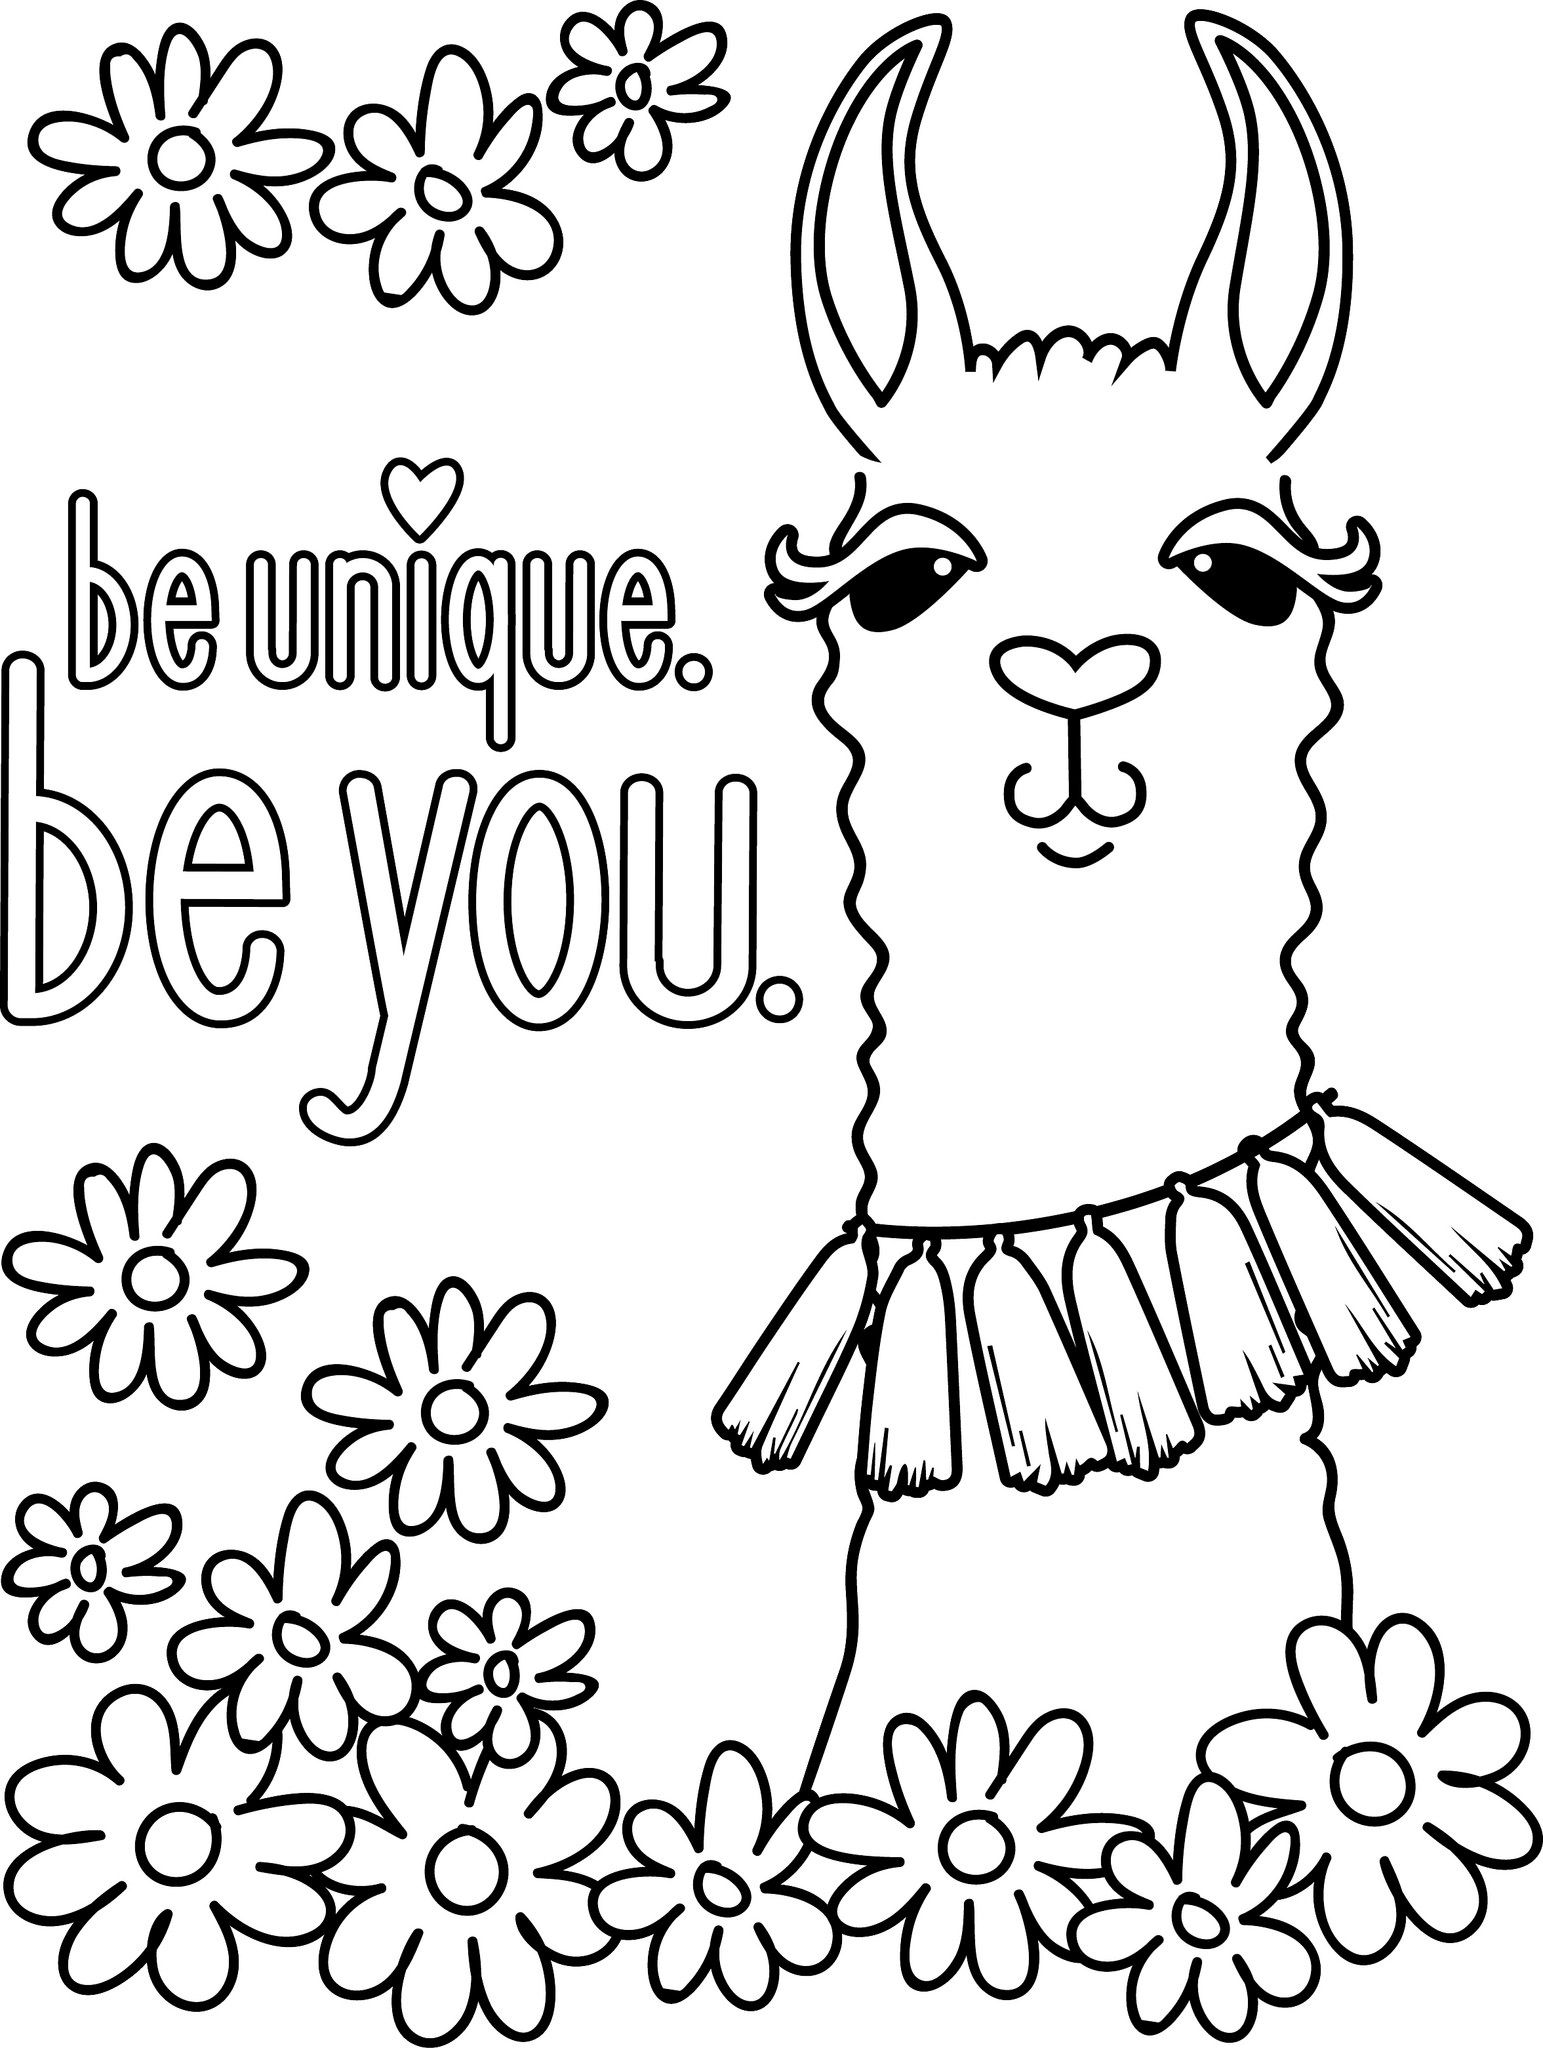 1543x2048 Llama Coloring Pages With Wallpapers Hd For Android Llama Coloring